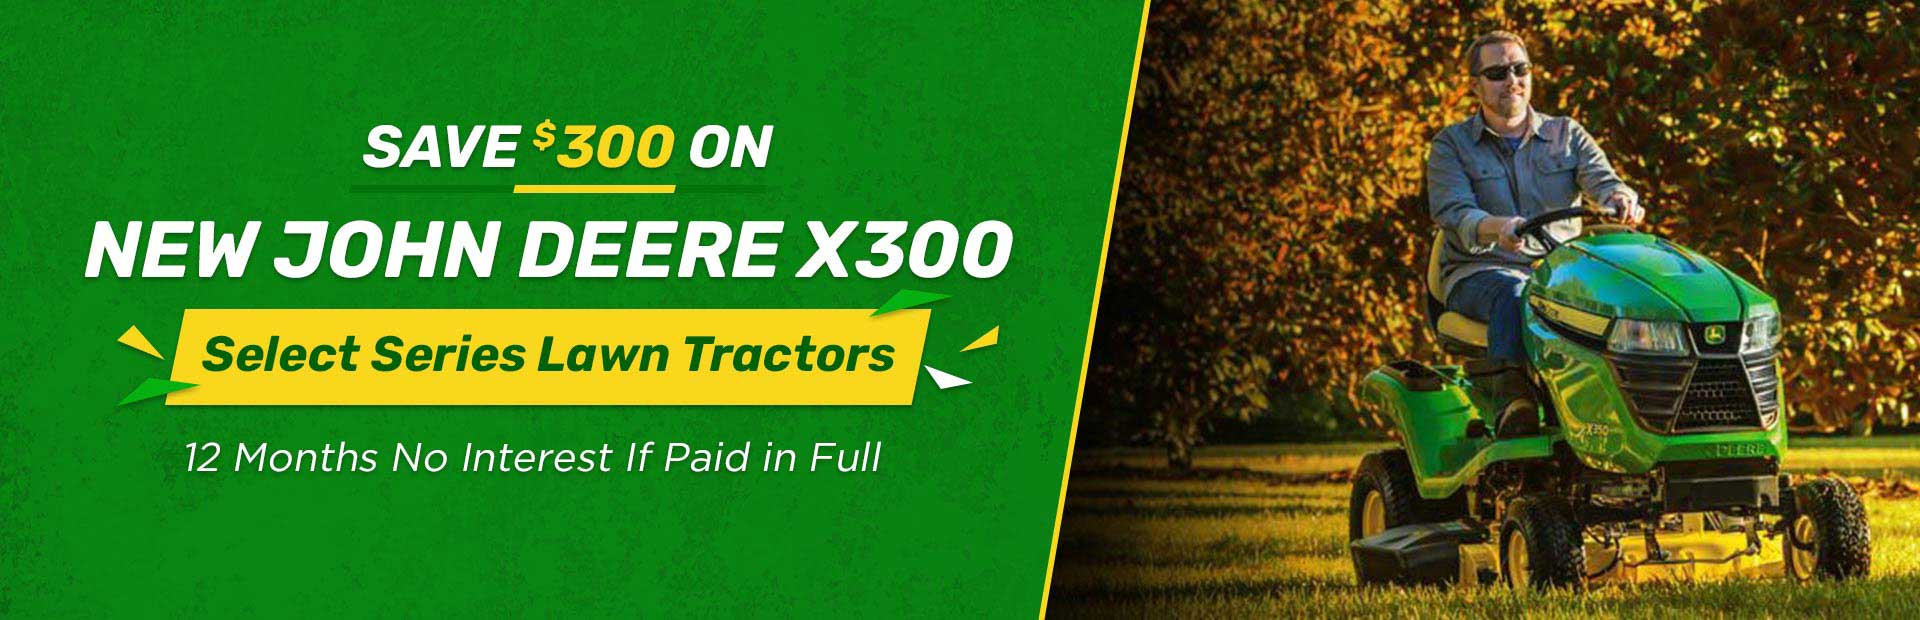 Save $300 on New John Deere X300 select series lawn tractors. Visit us now!